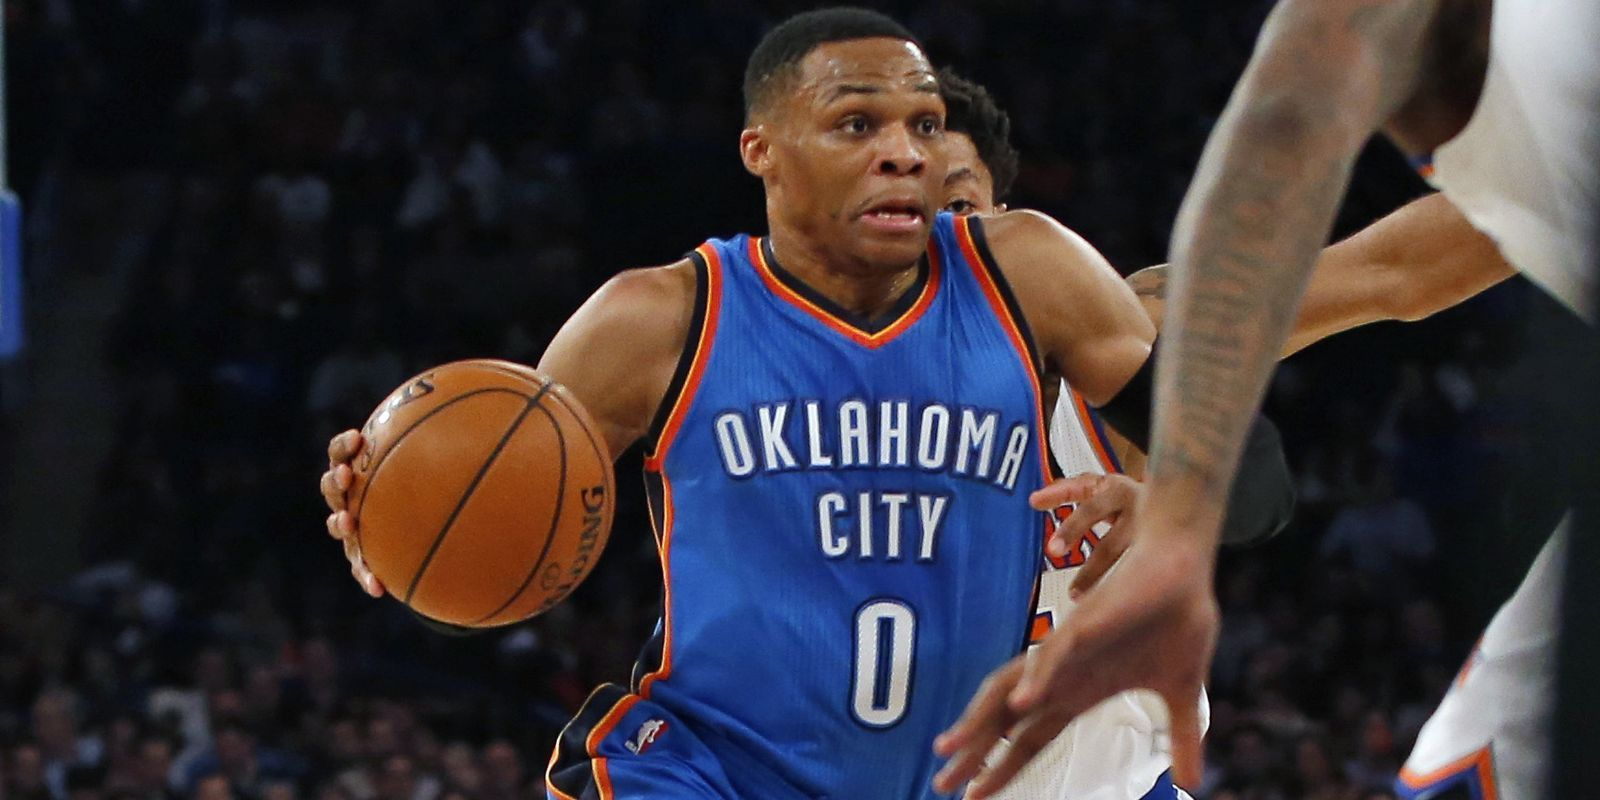 Russell Westbrook overwhelms Knicks